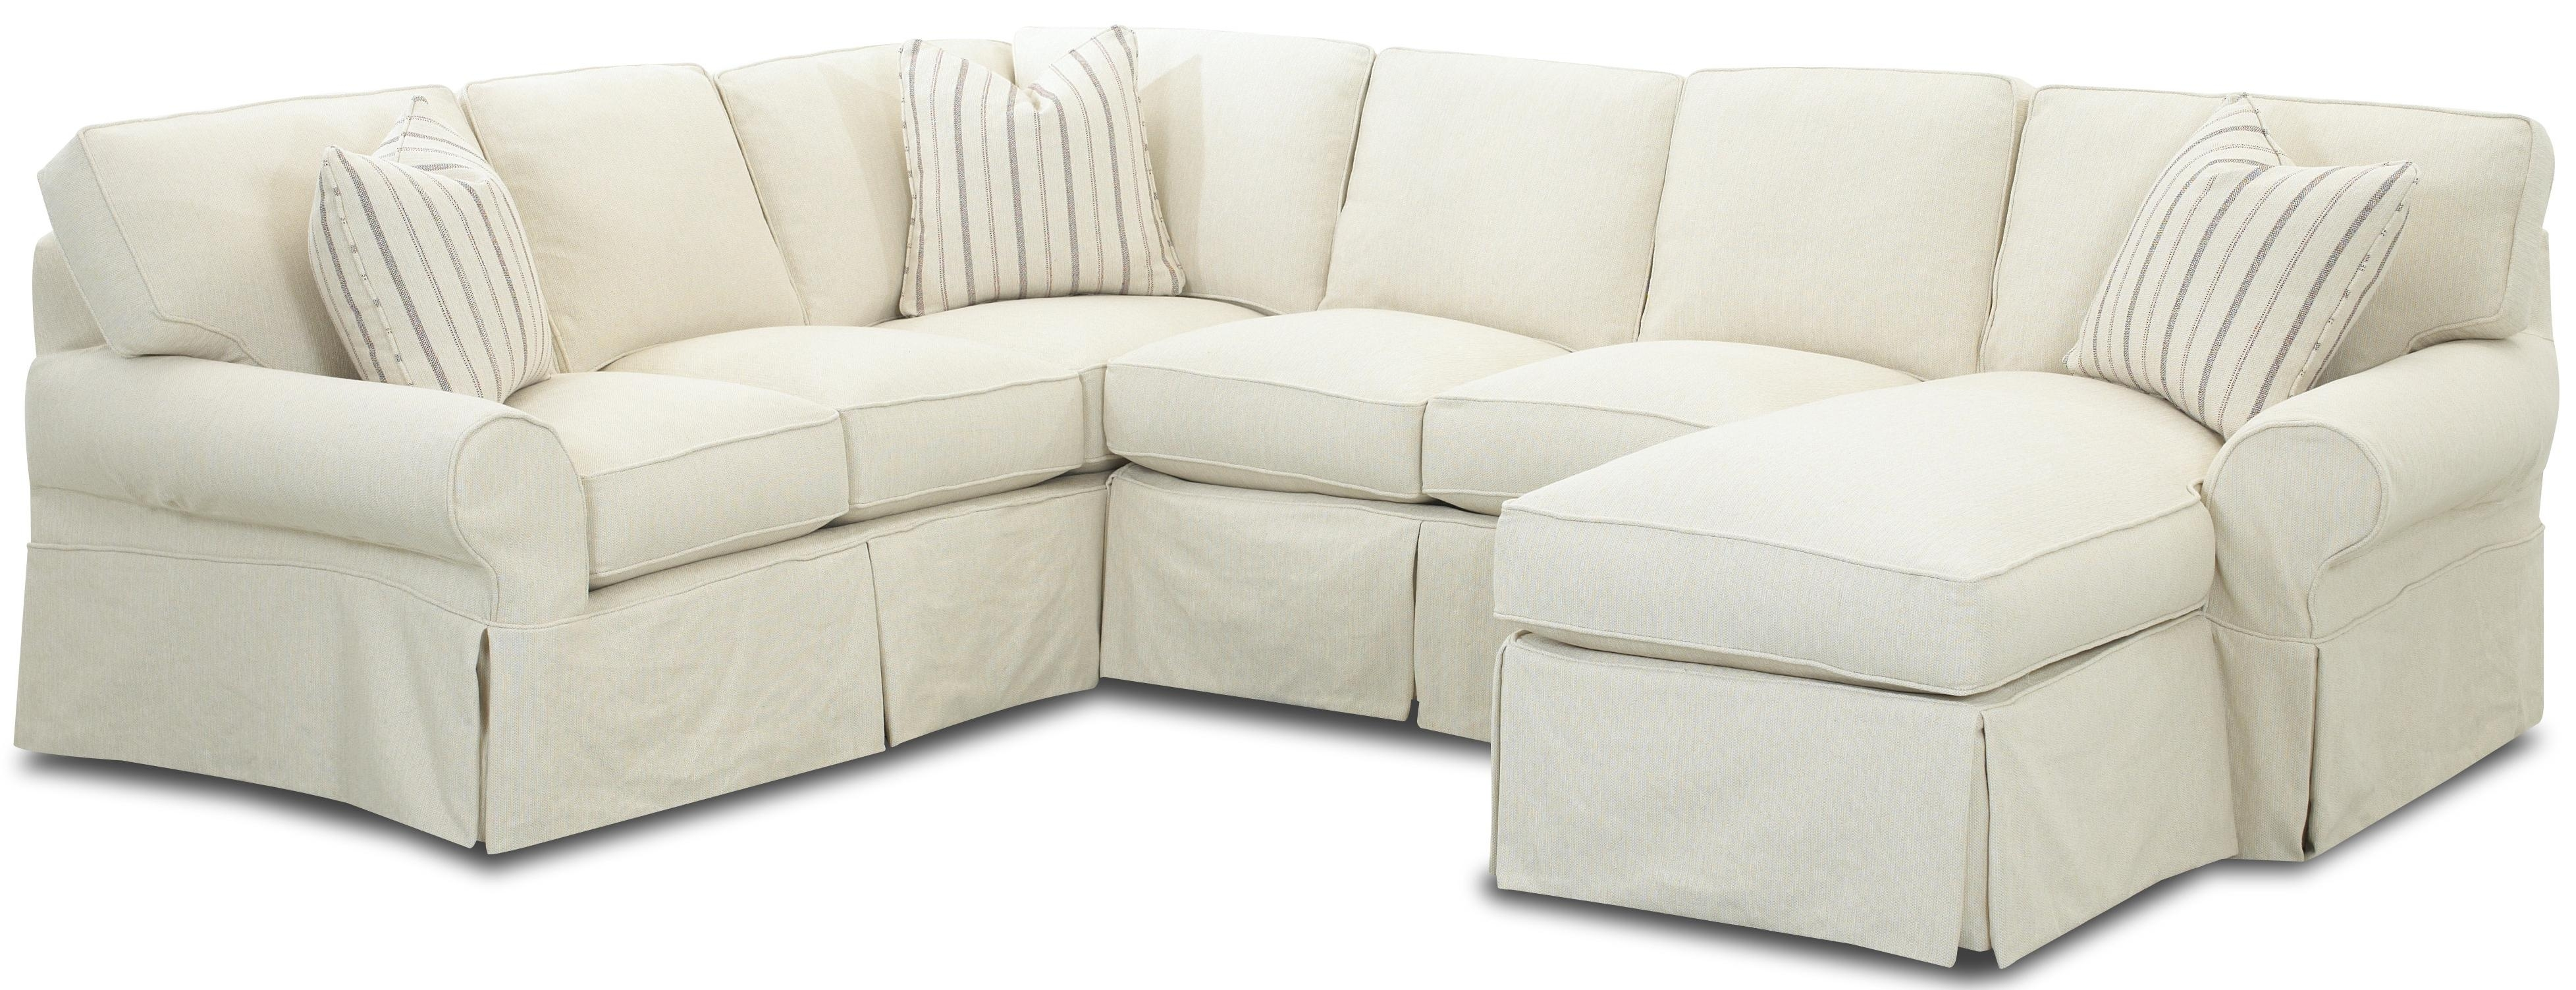 Sectional Sofa Covers | Aifaresidency Pertaining To Sectional Sofas With Covers (View 10 of 15)